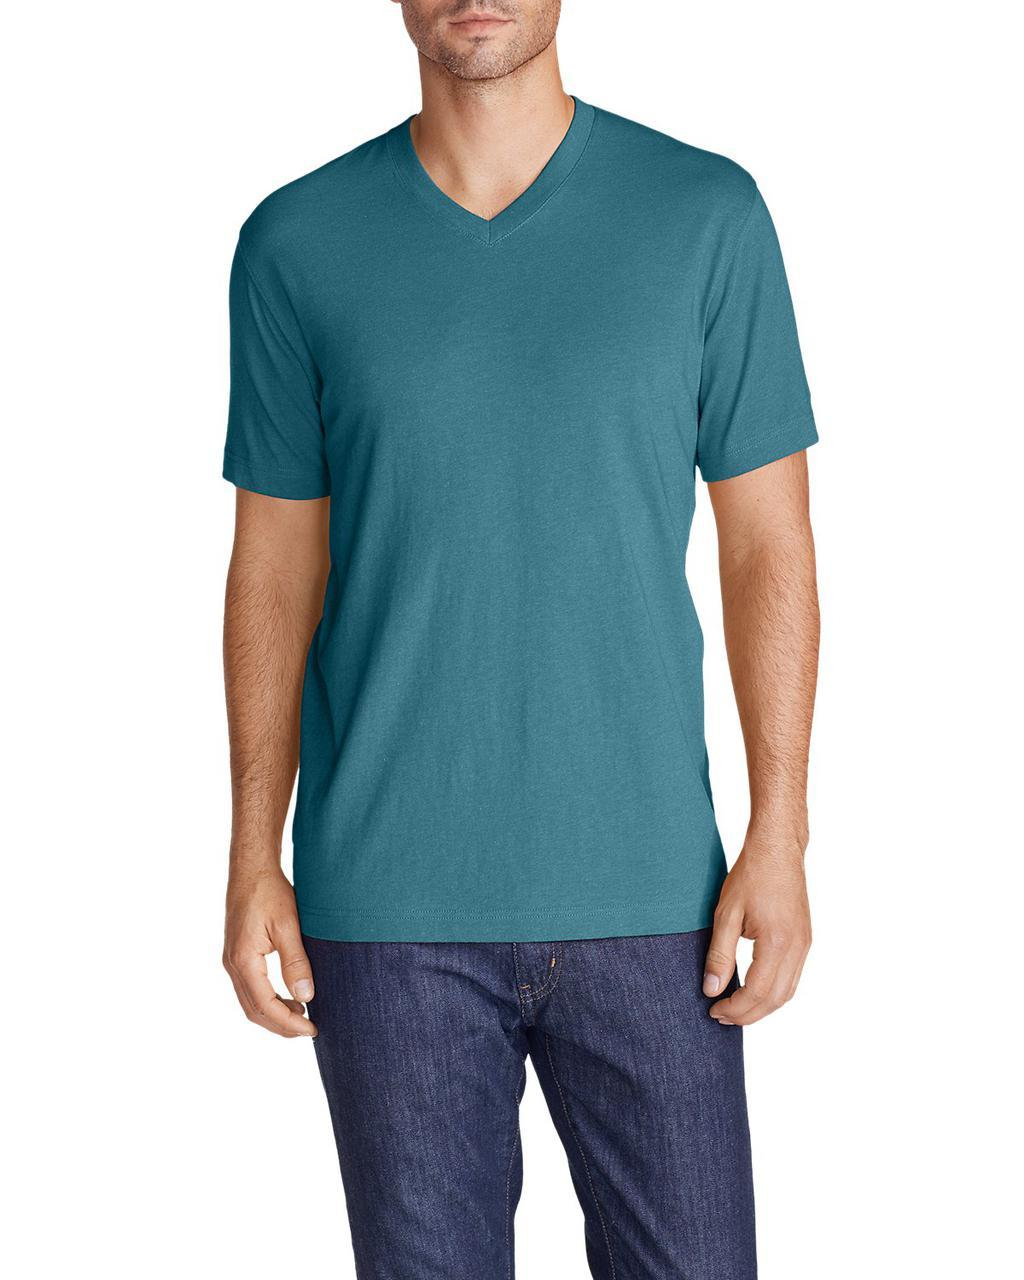 Футболка Eddie Bauer Legend Wash Short-Sleeve V-Neck T-Shirt - Classic Fit L